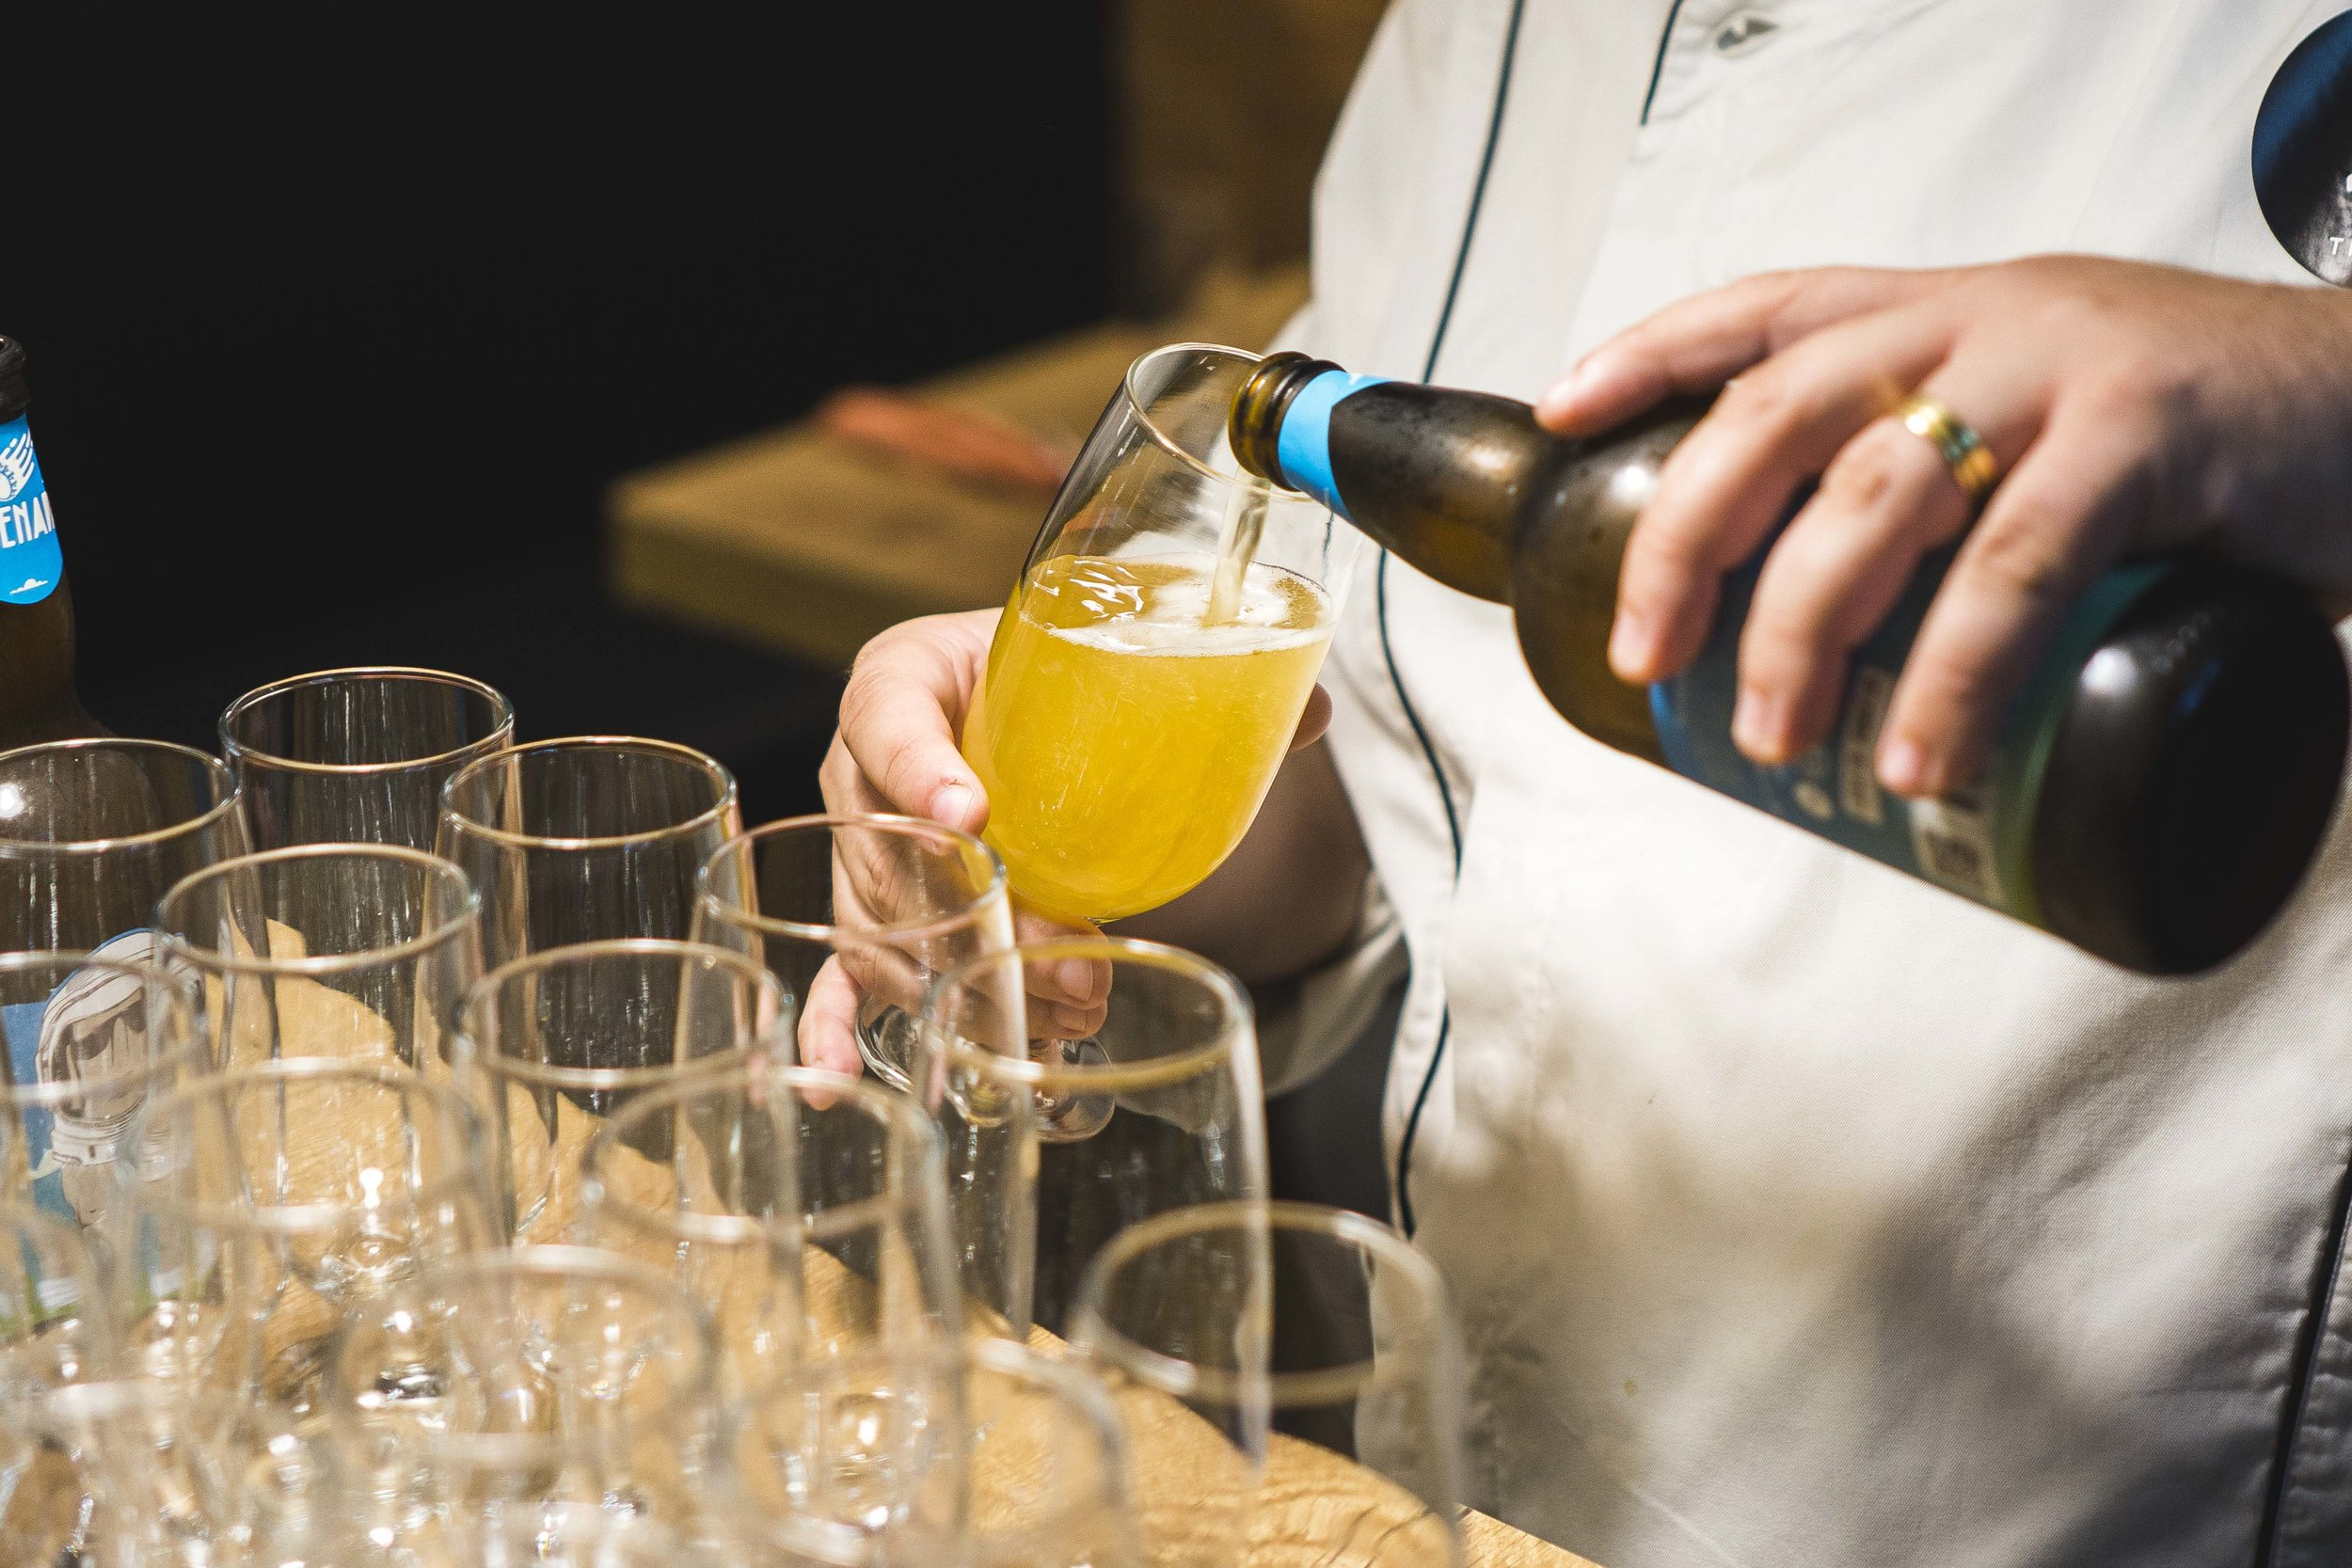 Hire Bartenders for a Private Event